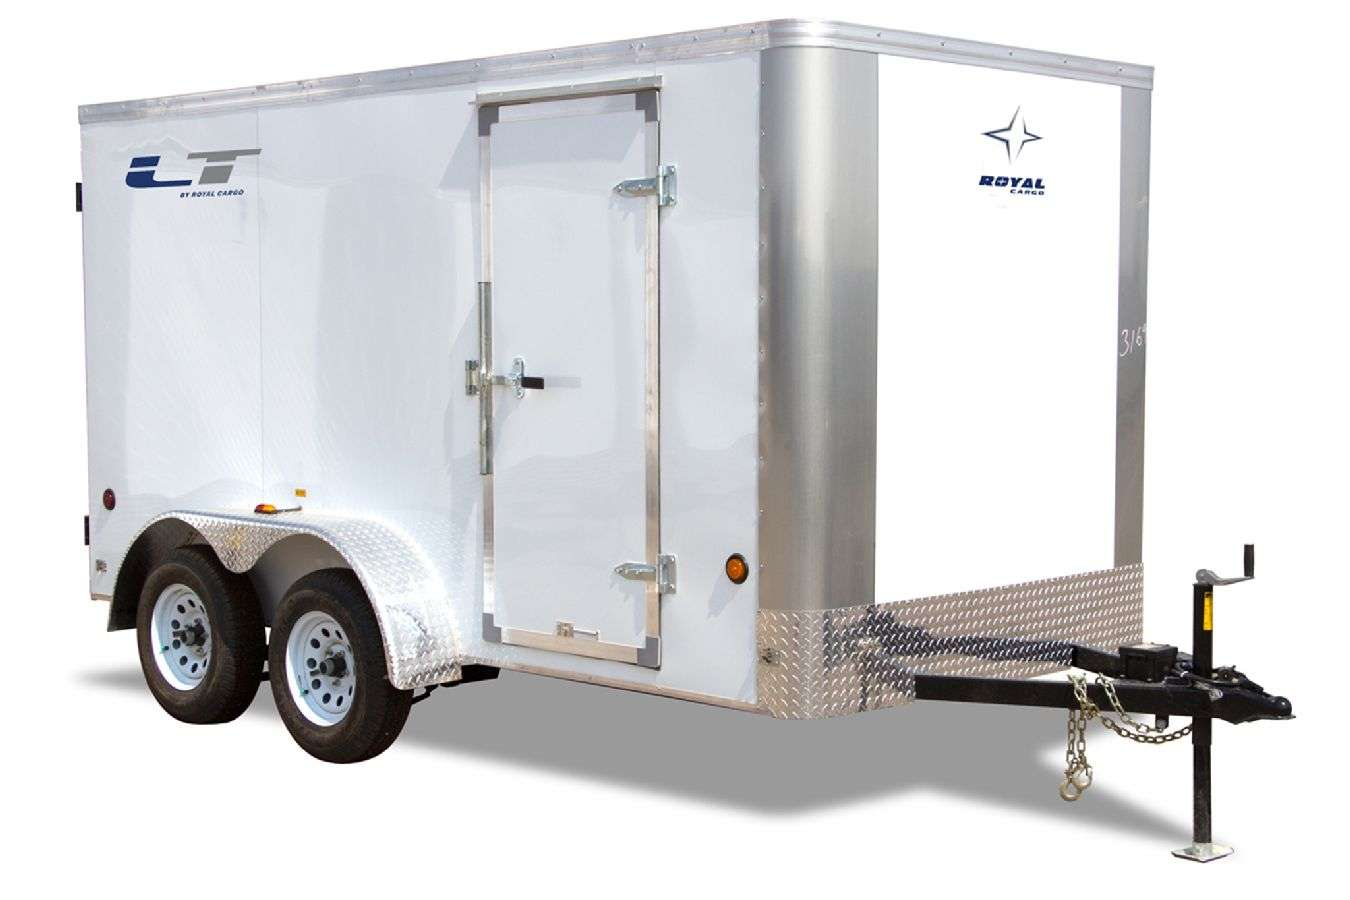 LT Series 6' Cargo Trailers